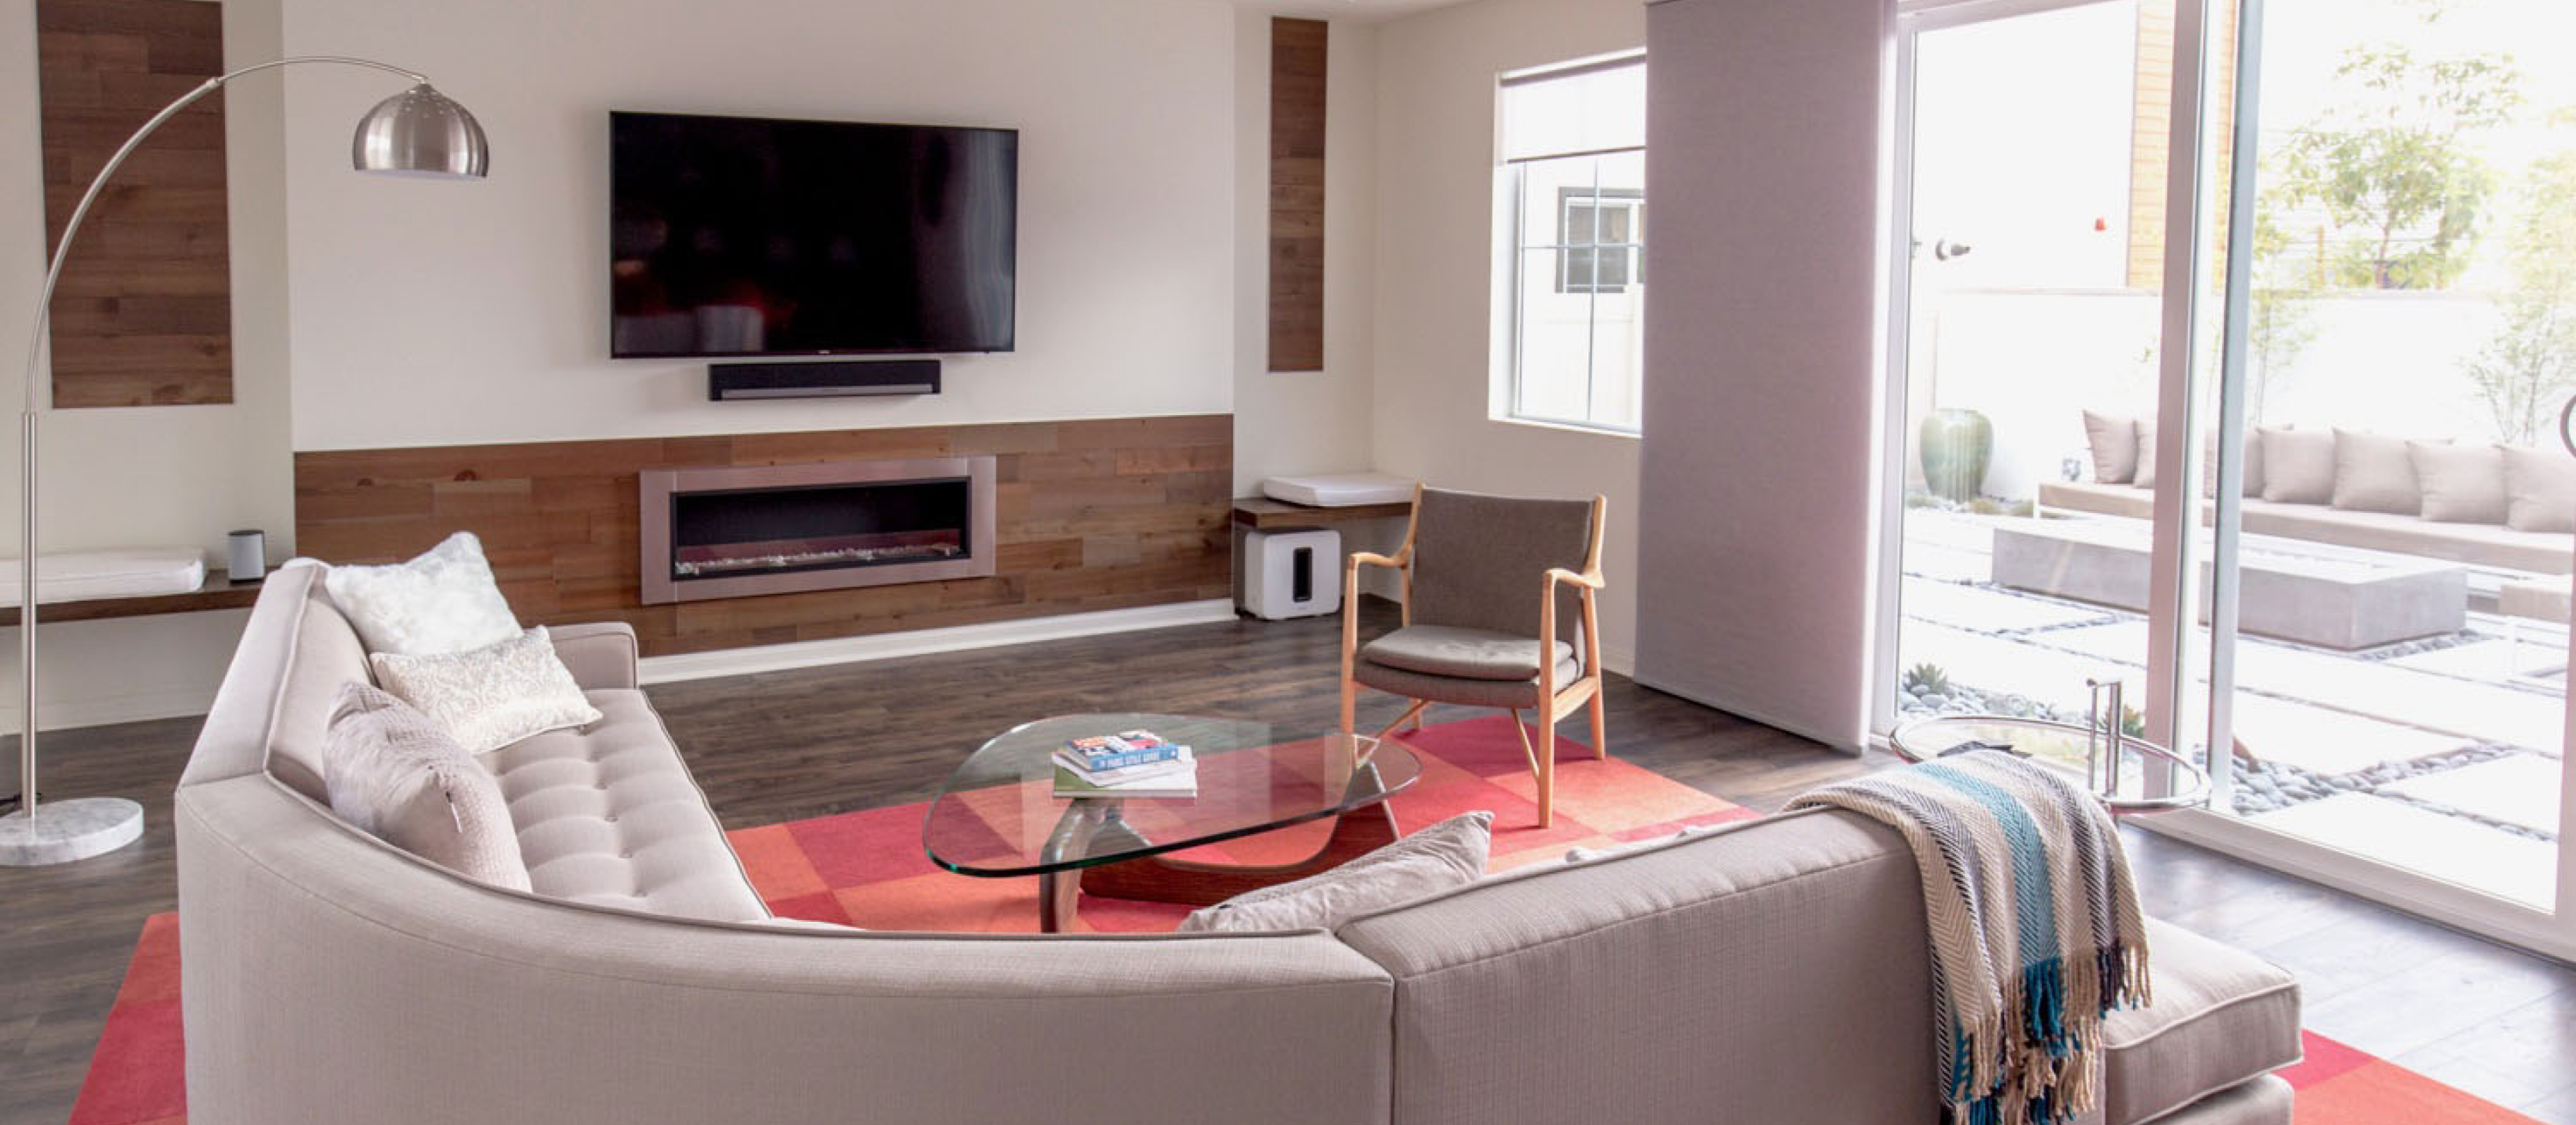 Modern great living room with a Stikwood real reclaimed douglas fir peel and stick wood plank accents with a warm cinnamon-brown color.